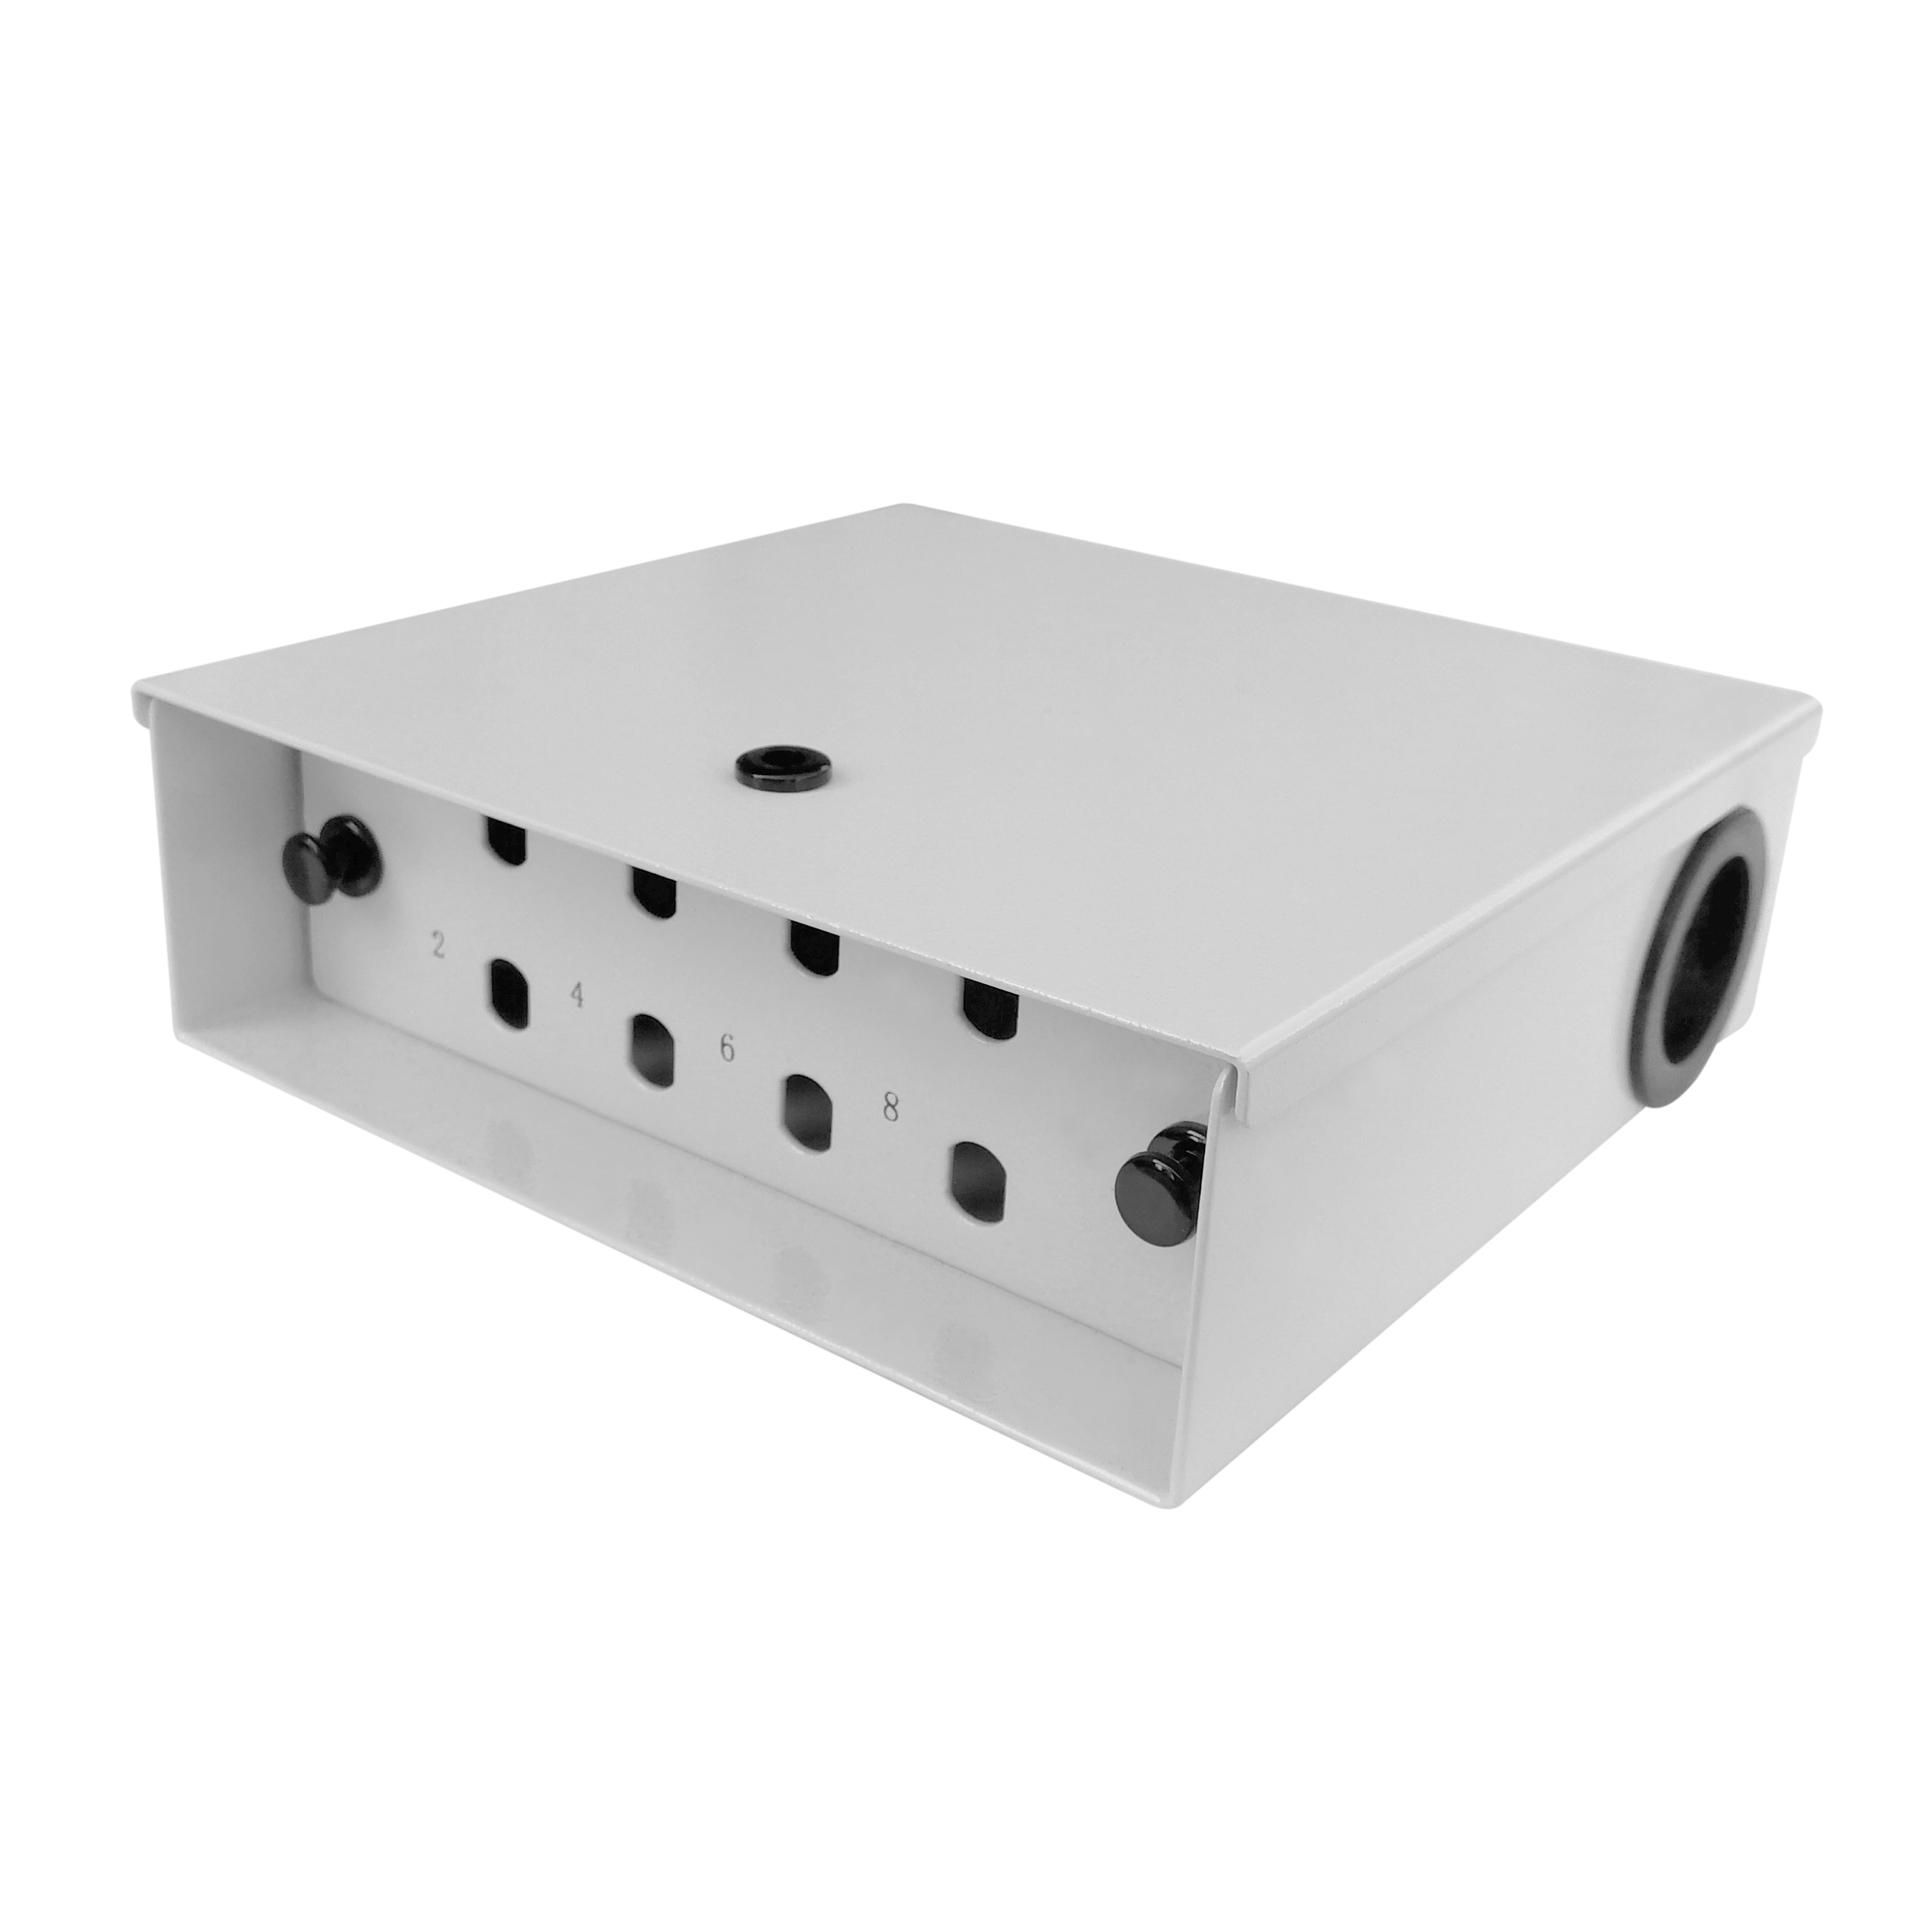 8 Port WODF Fiber Optic Distribution Box, ST Simplex